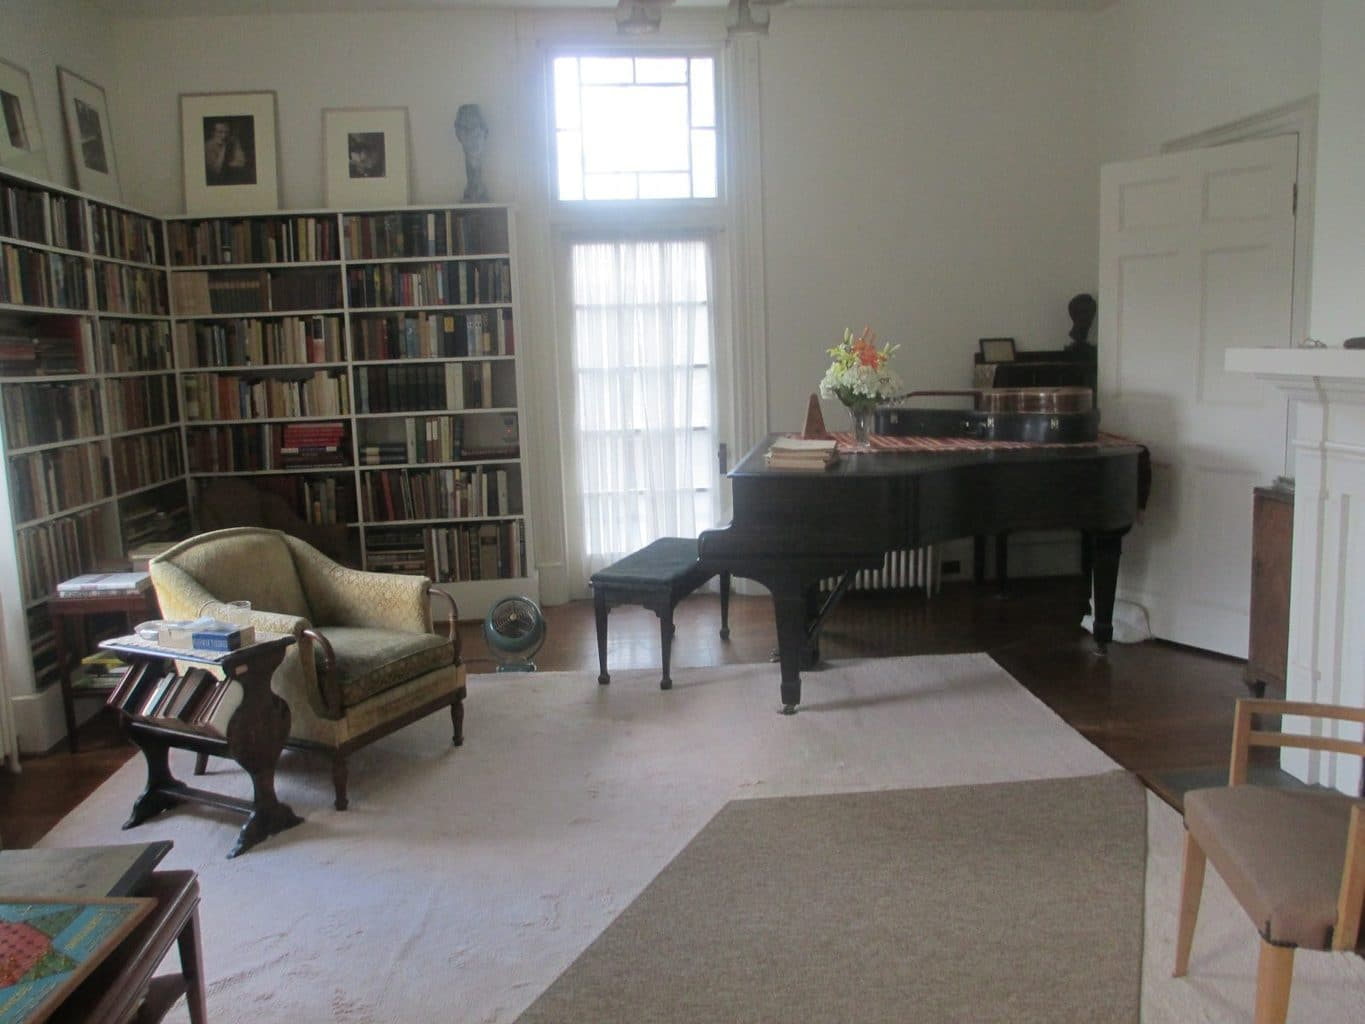 parlor with piano